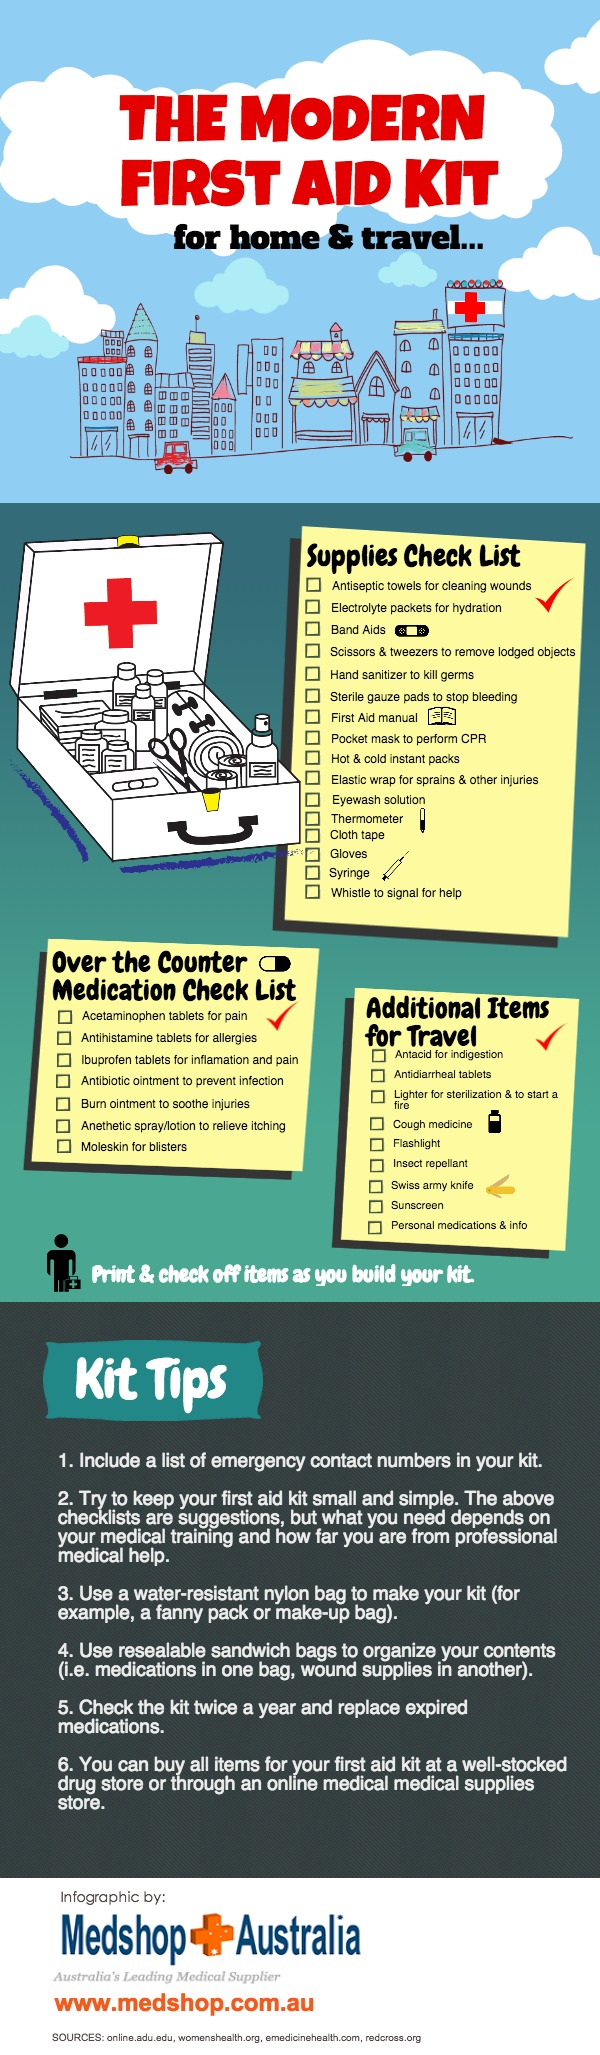 First Aid Kit Infographic Australia #firstaid #medical #emergency